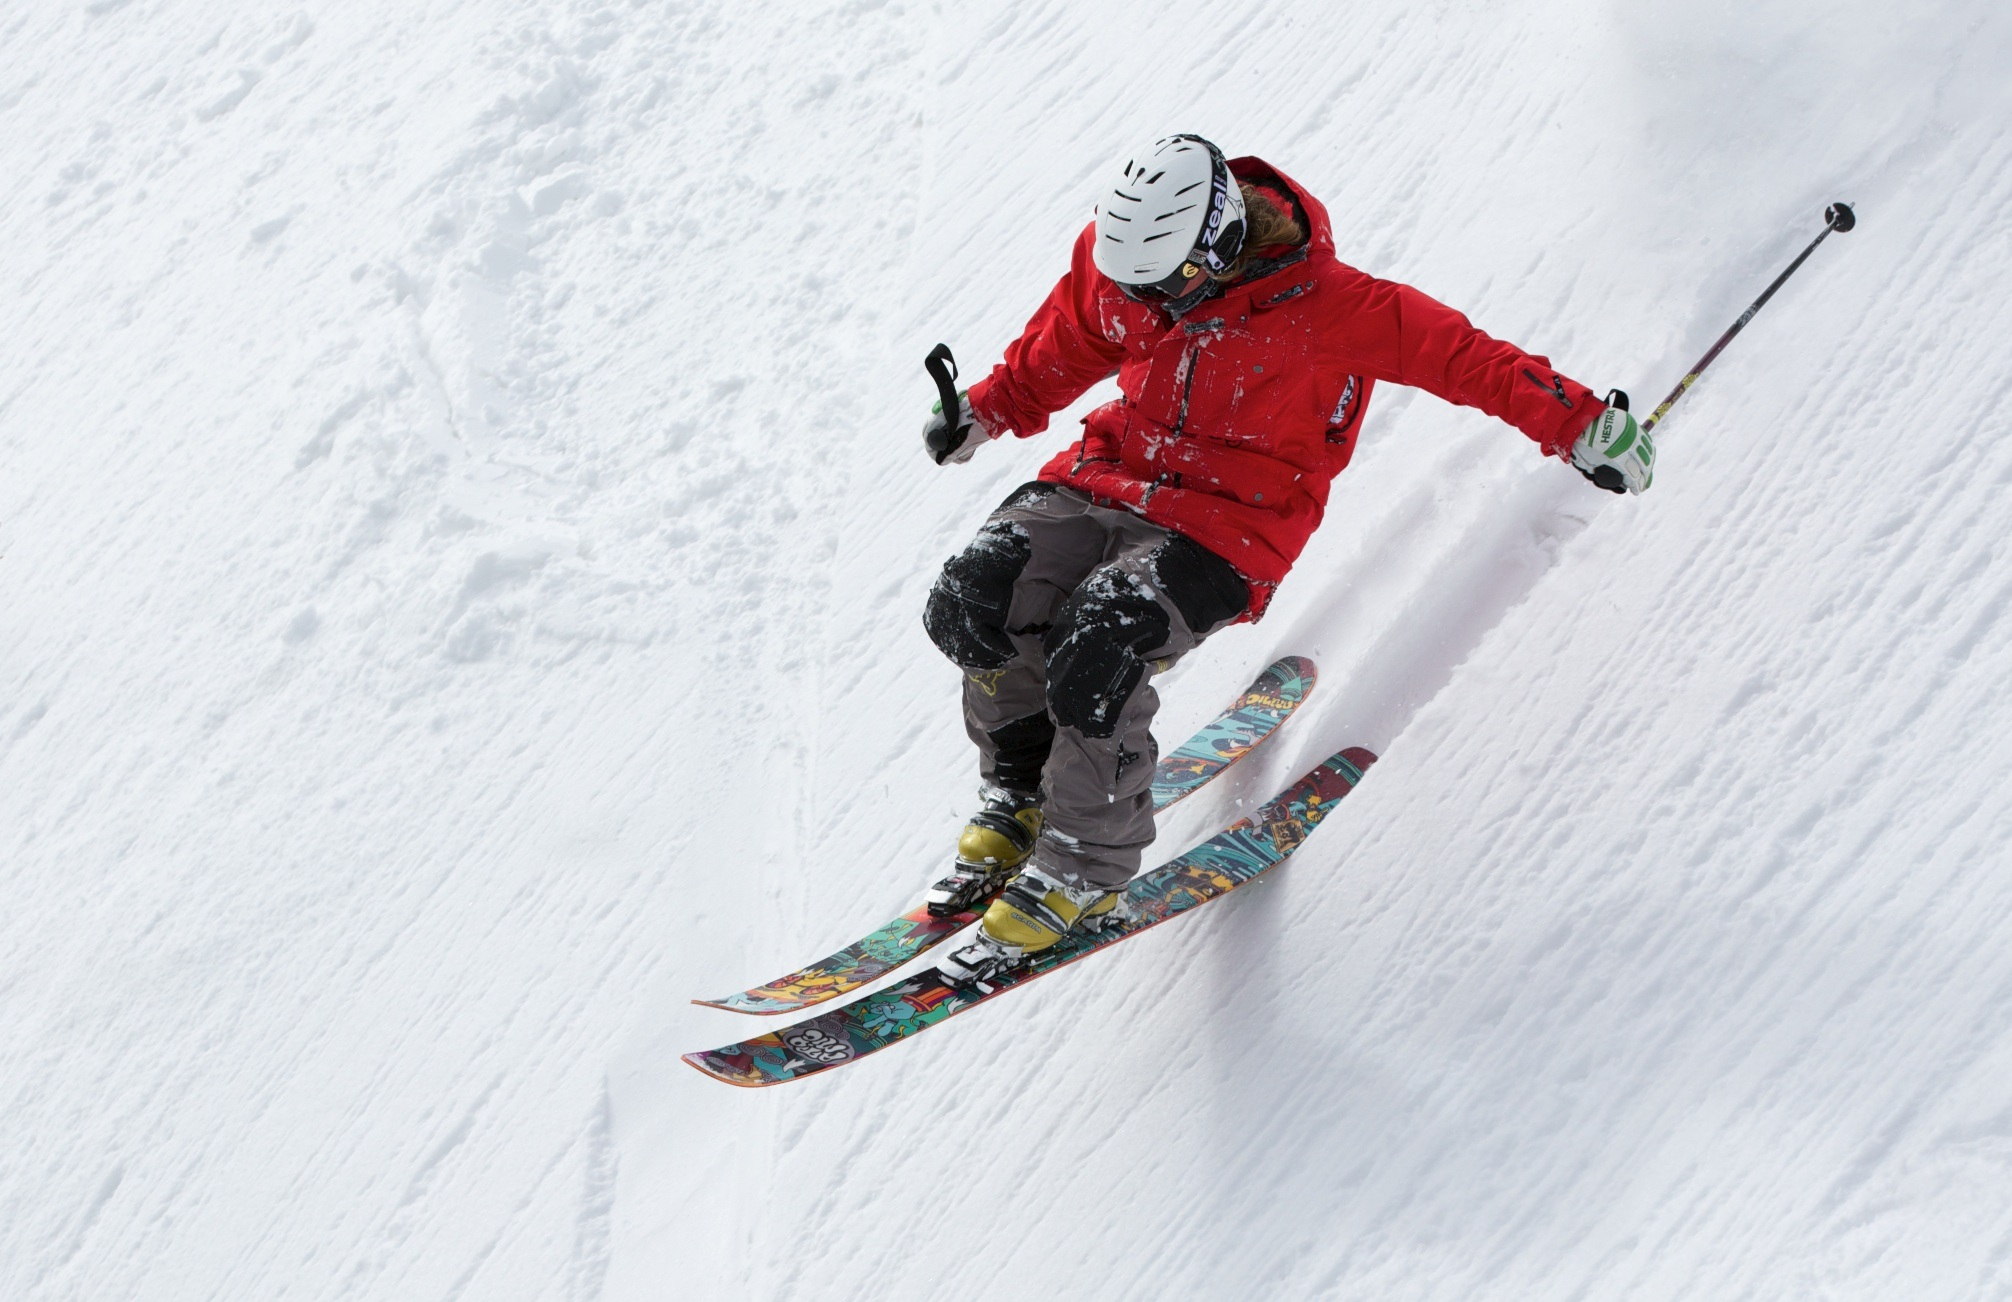 Skiing with bad knees